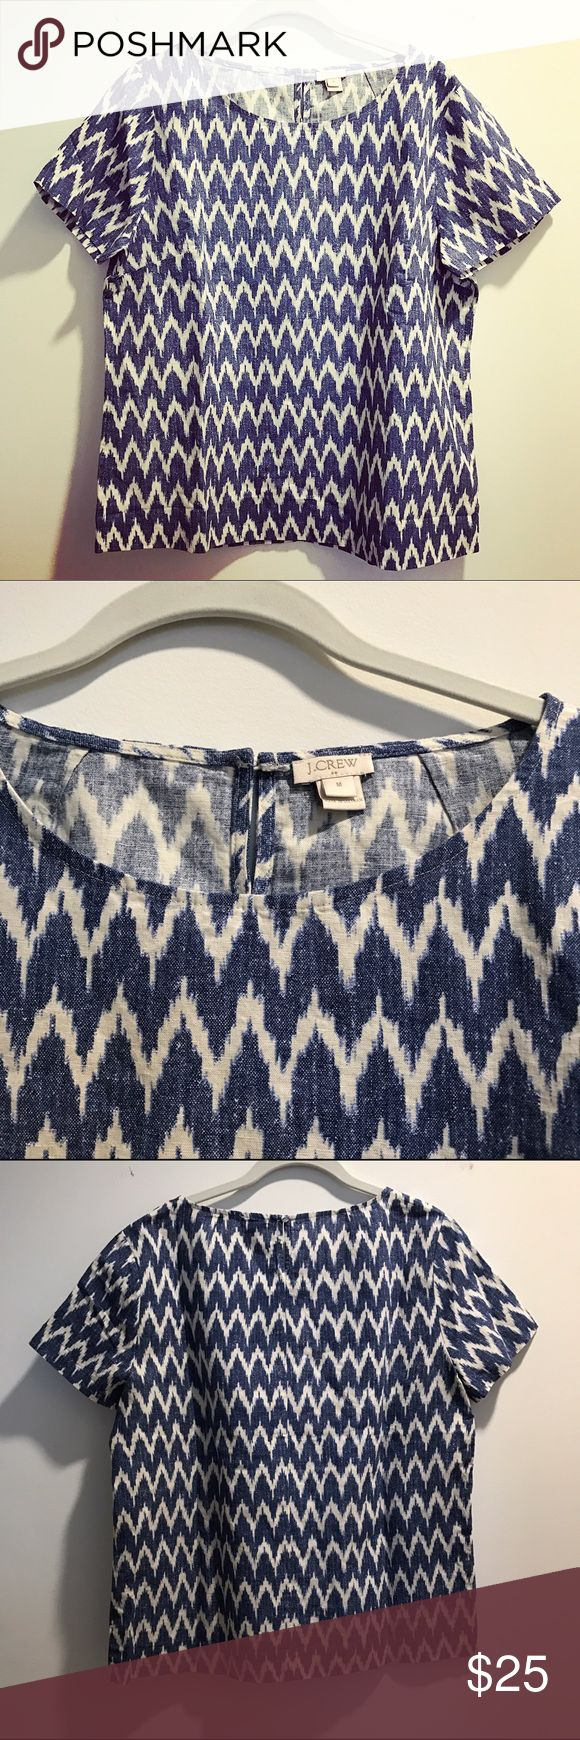 J. Crew short-sleeved top in zigzag ikat Short-sleeved top in zigzag ikat from J. Crew. Blue and white, with a buttoned back. The shirt is 55% lin and 45% cotton. The top is meant to be a bit oversized. J. Crew Tops Tees - Short Sleeve